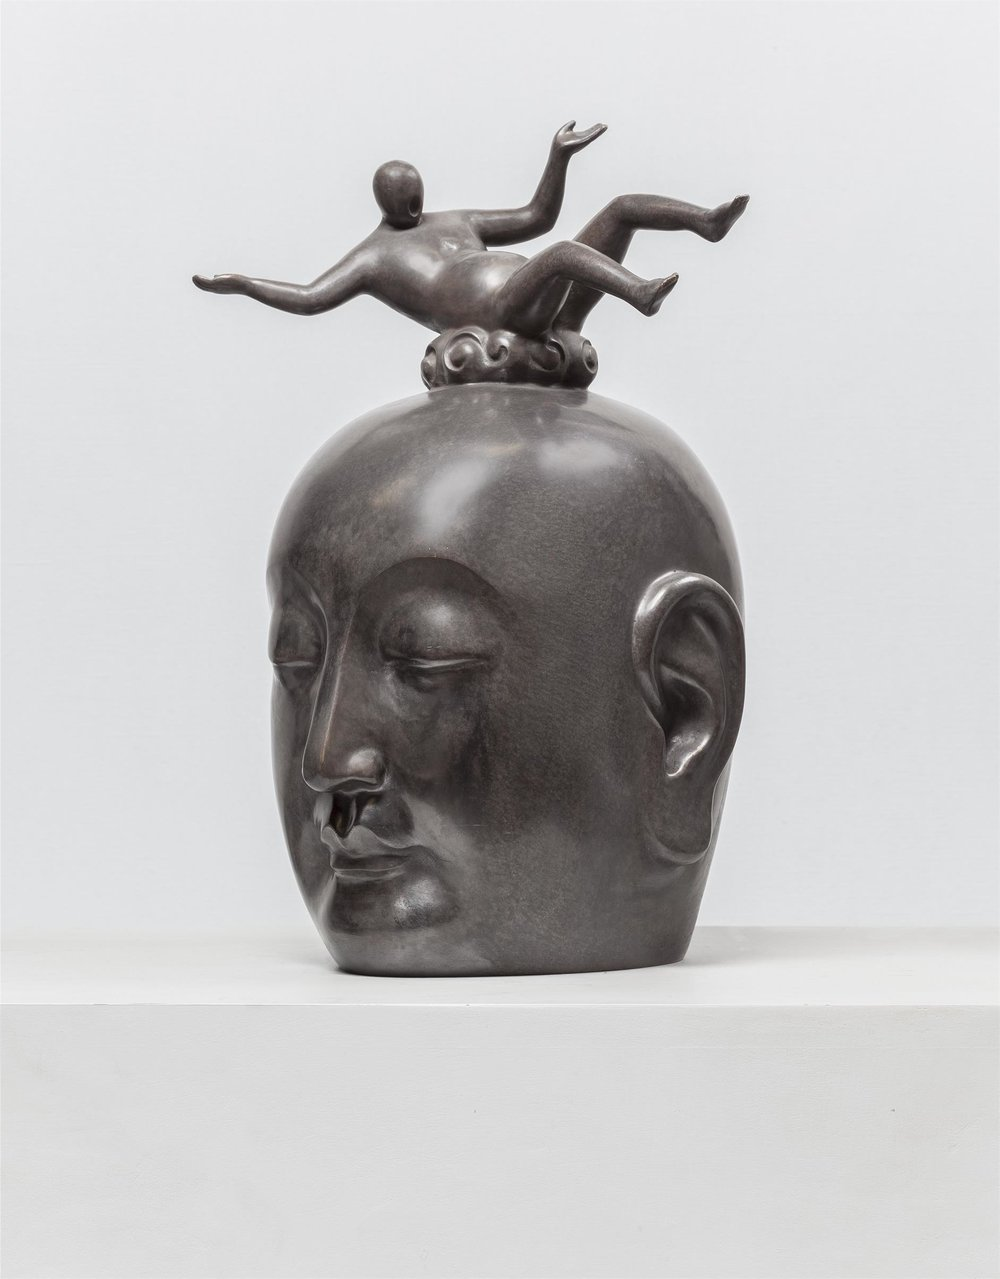 Salvation No.3 , 2015, bronze sculpture, 45 x 28 x 24 cm